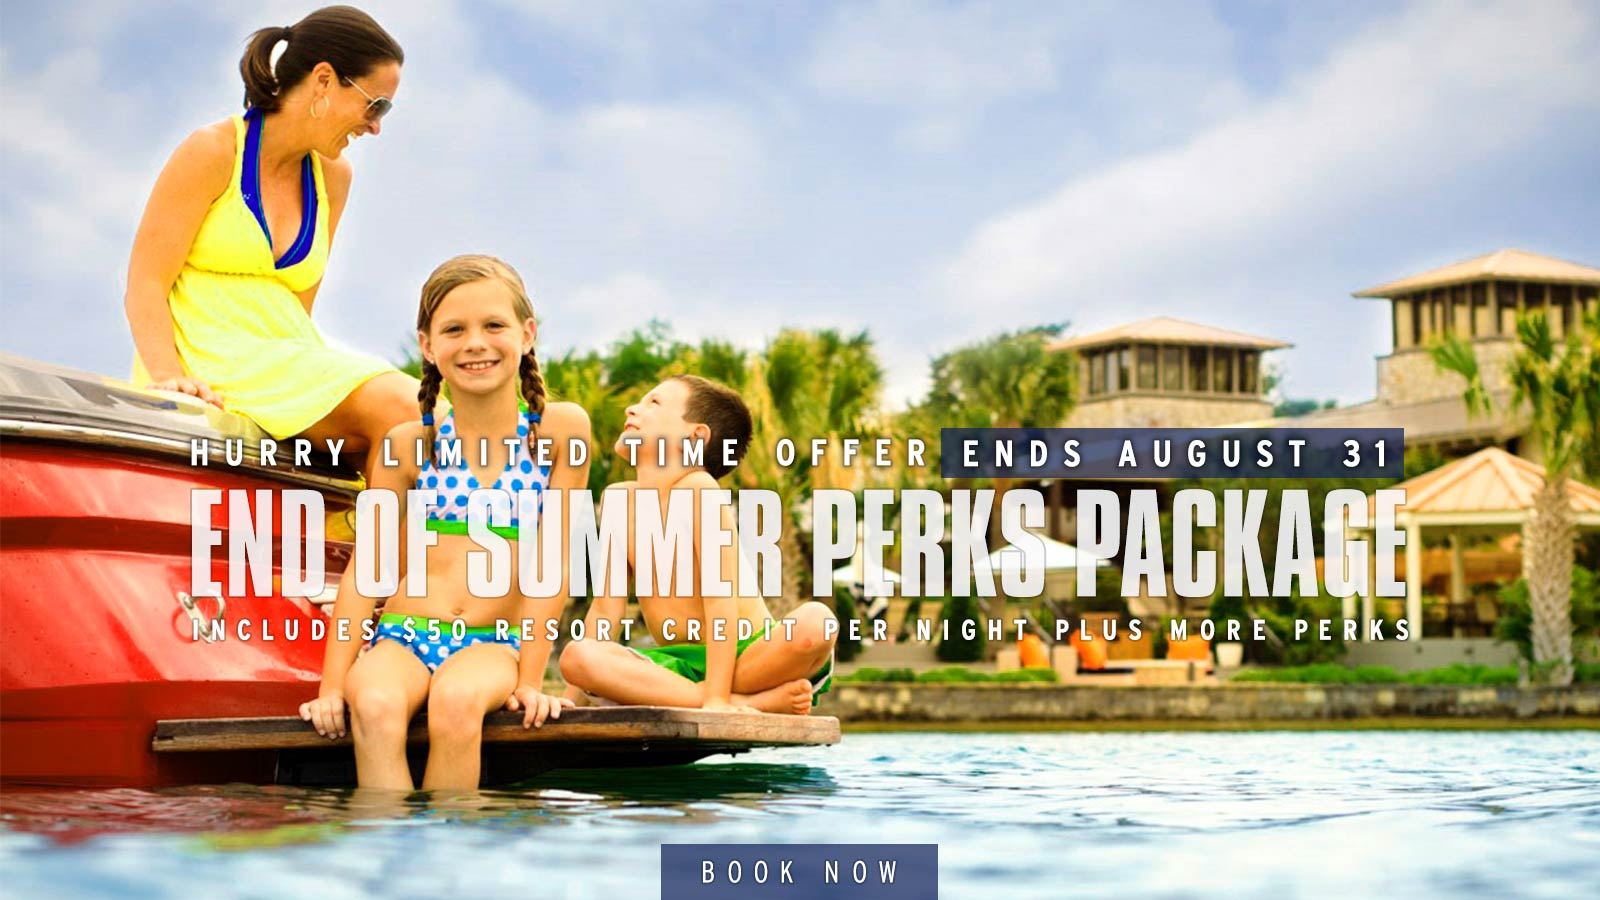 End of Summer Perks Package